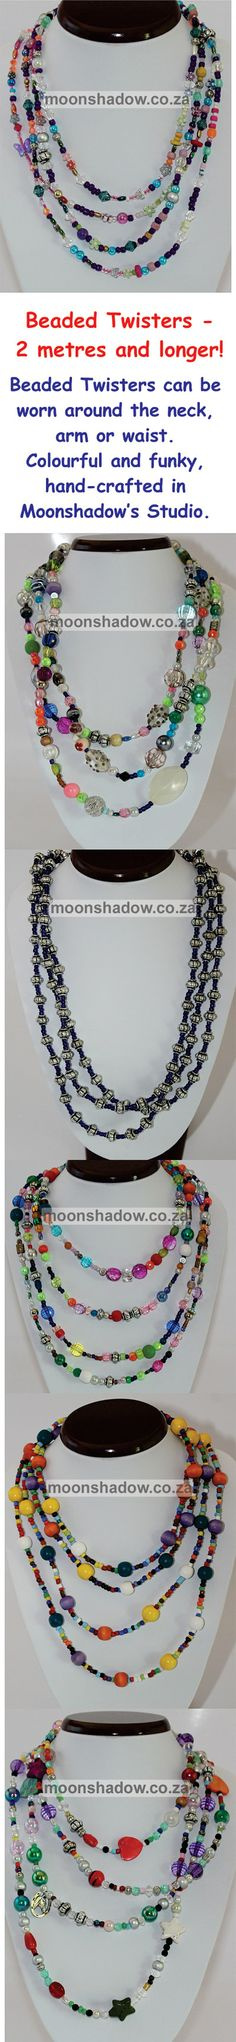 NEW STOCK! http://moonshadow.co.za/online_shop/necklaces/beaded-twisters.html  Beaded Twisters, 2 metres and longer! Priced starting at R90 (Approx $8.71 / €6.35), international shipping available.  These funky pieces can be worn around the neck, arm or waist. Versatile and colourful! Hand-crafted in Moonshadow's studio (#Swellendam, #SouthAfrica), these are one-of-a-kind pieces. (Gift Vouchers available.)